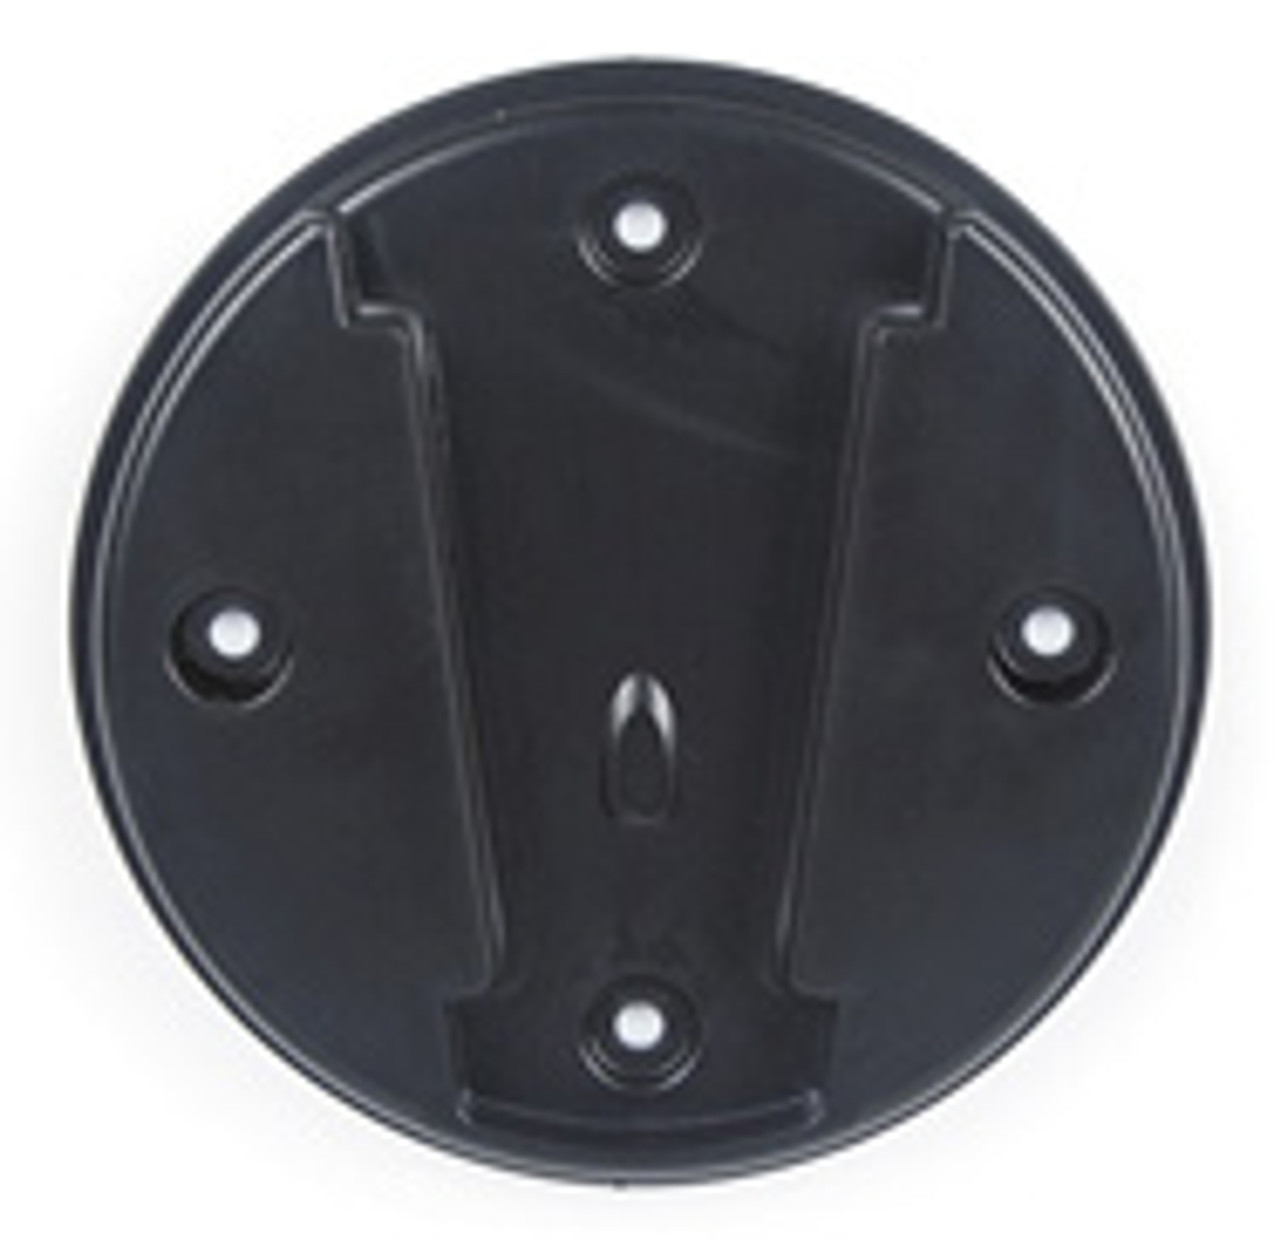 Catch Cover Wall Puck Disc for Catch Cover Products, Rattlesnake Reels, Rod Holders etc